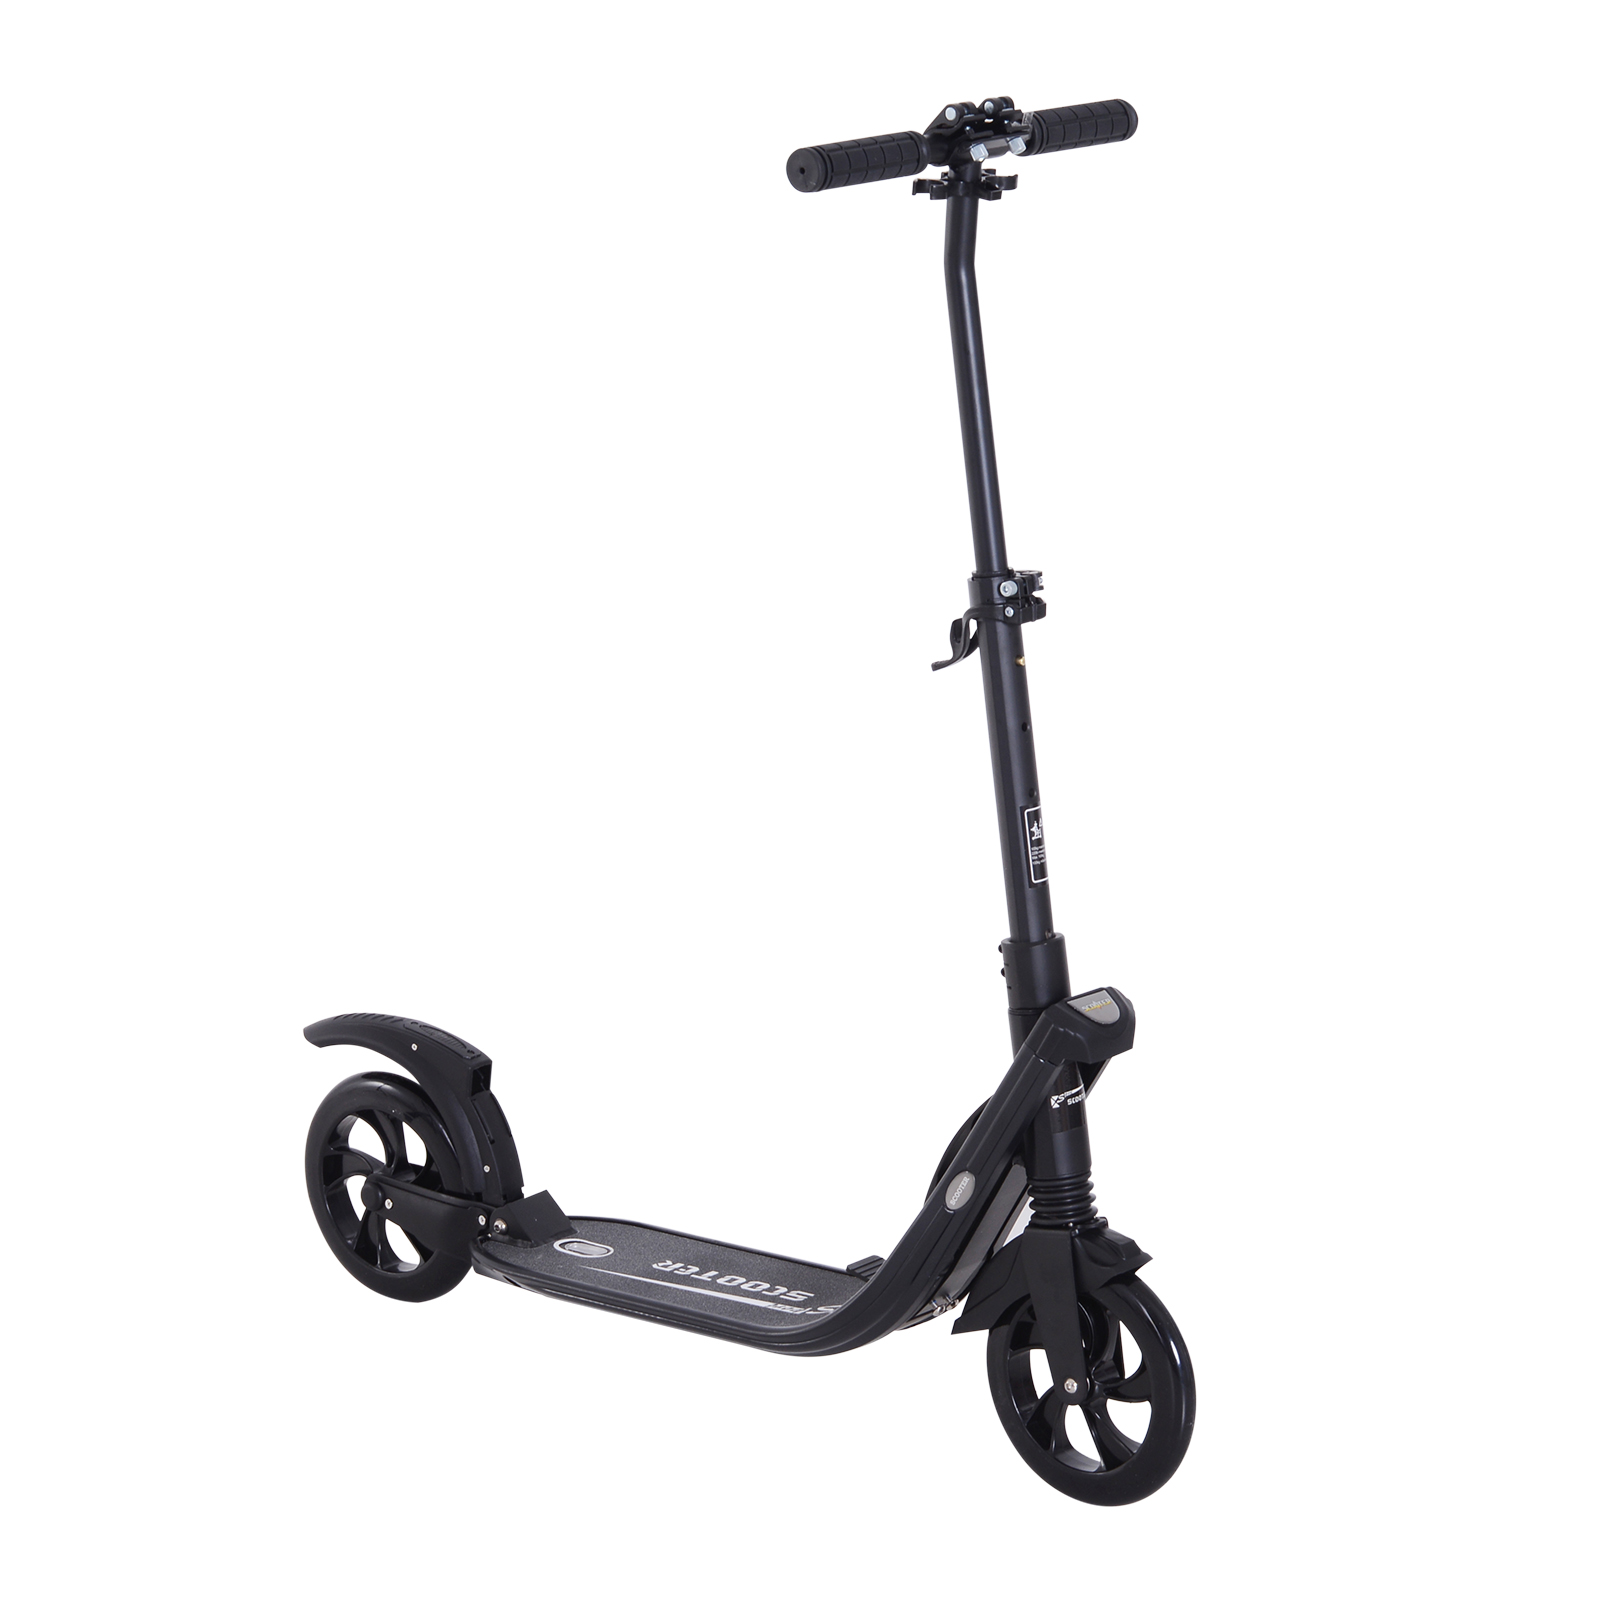 Teens-Adult-Folding-Electric-Scooter-Teenager-Rider-With-Brakes-and-Kickstand miniature 18